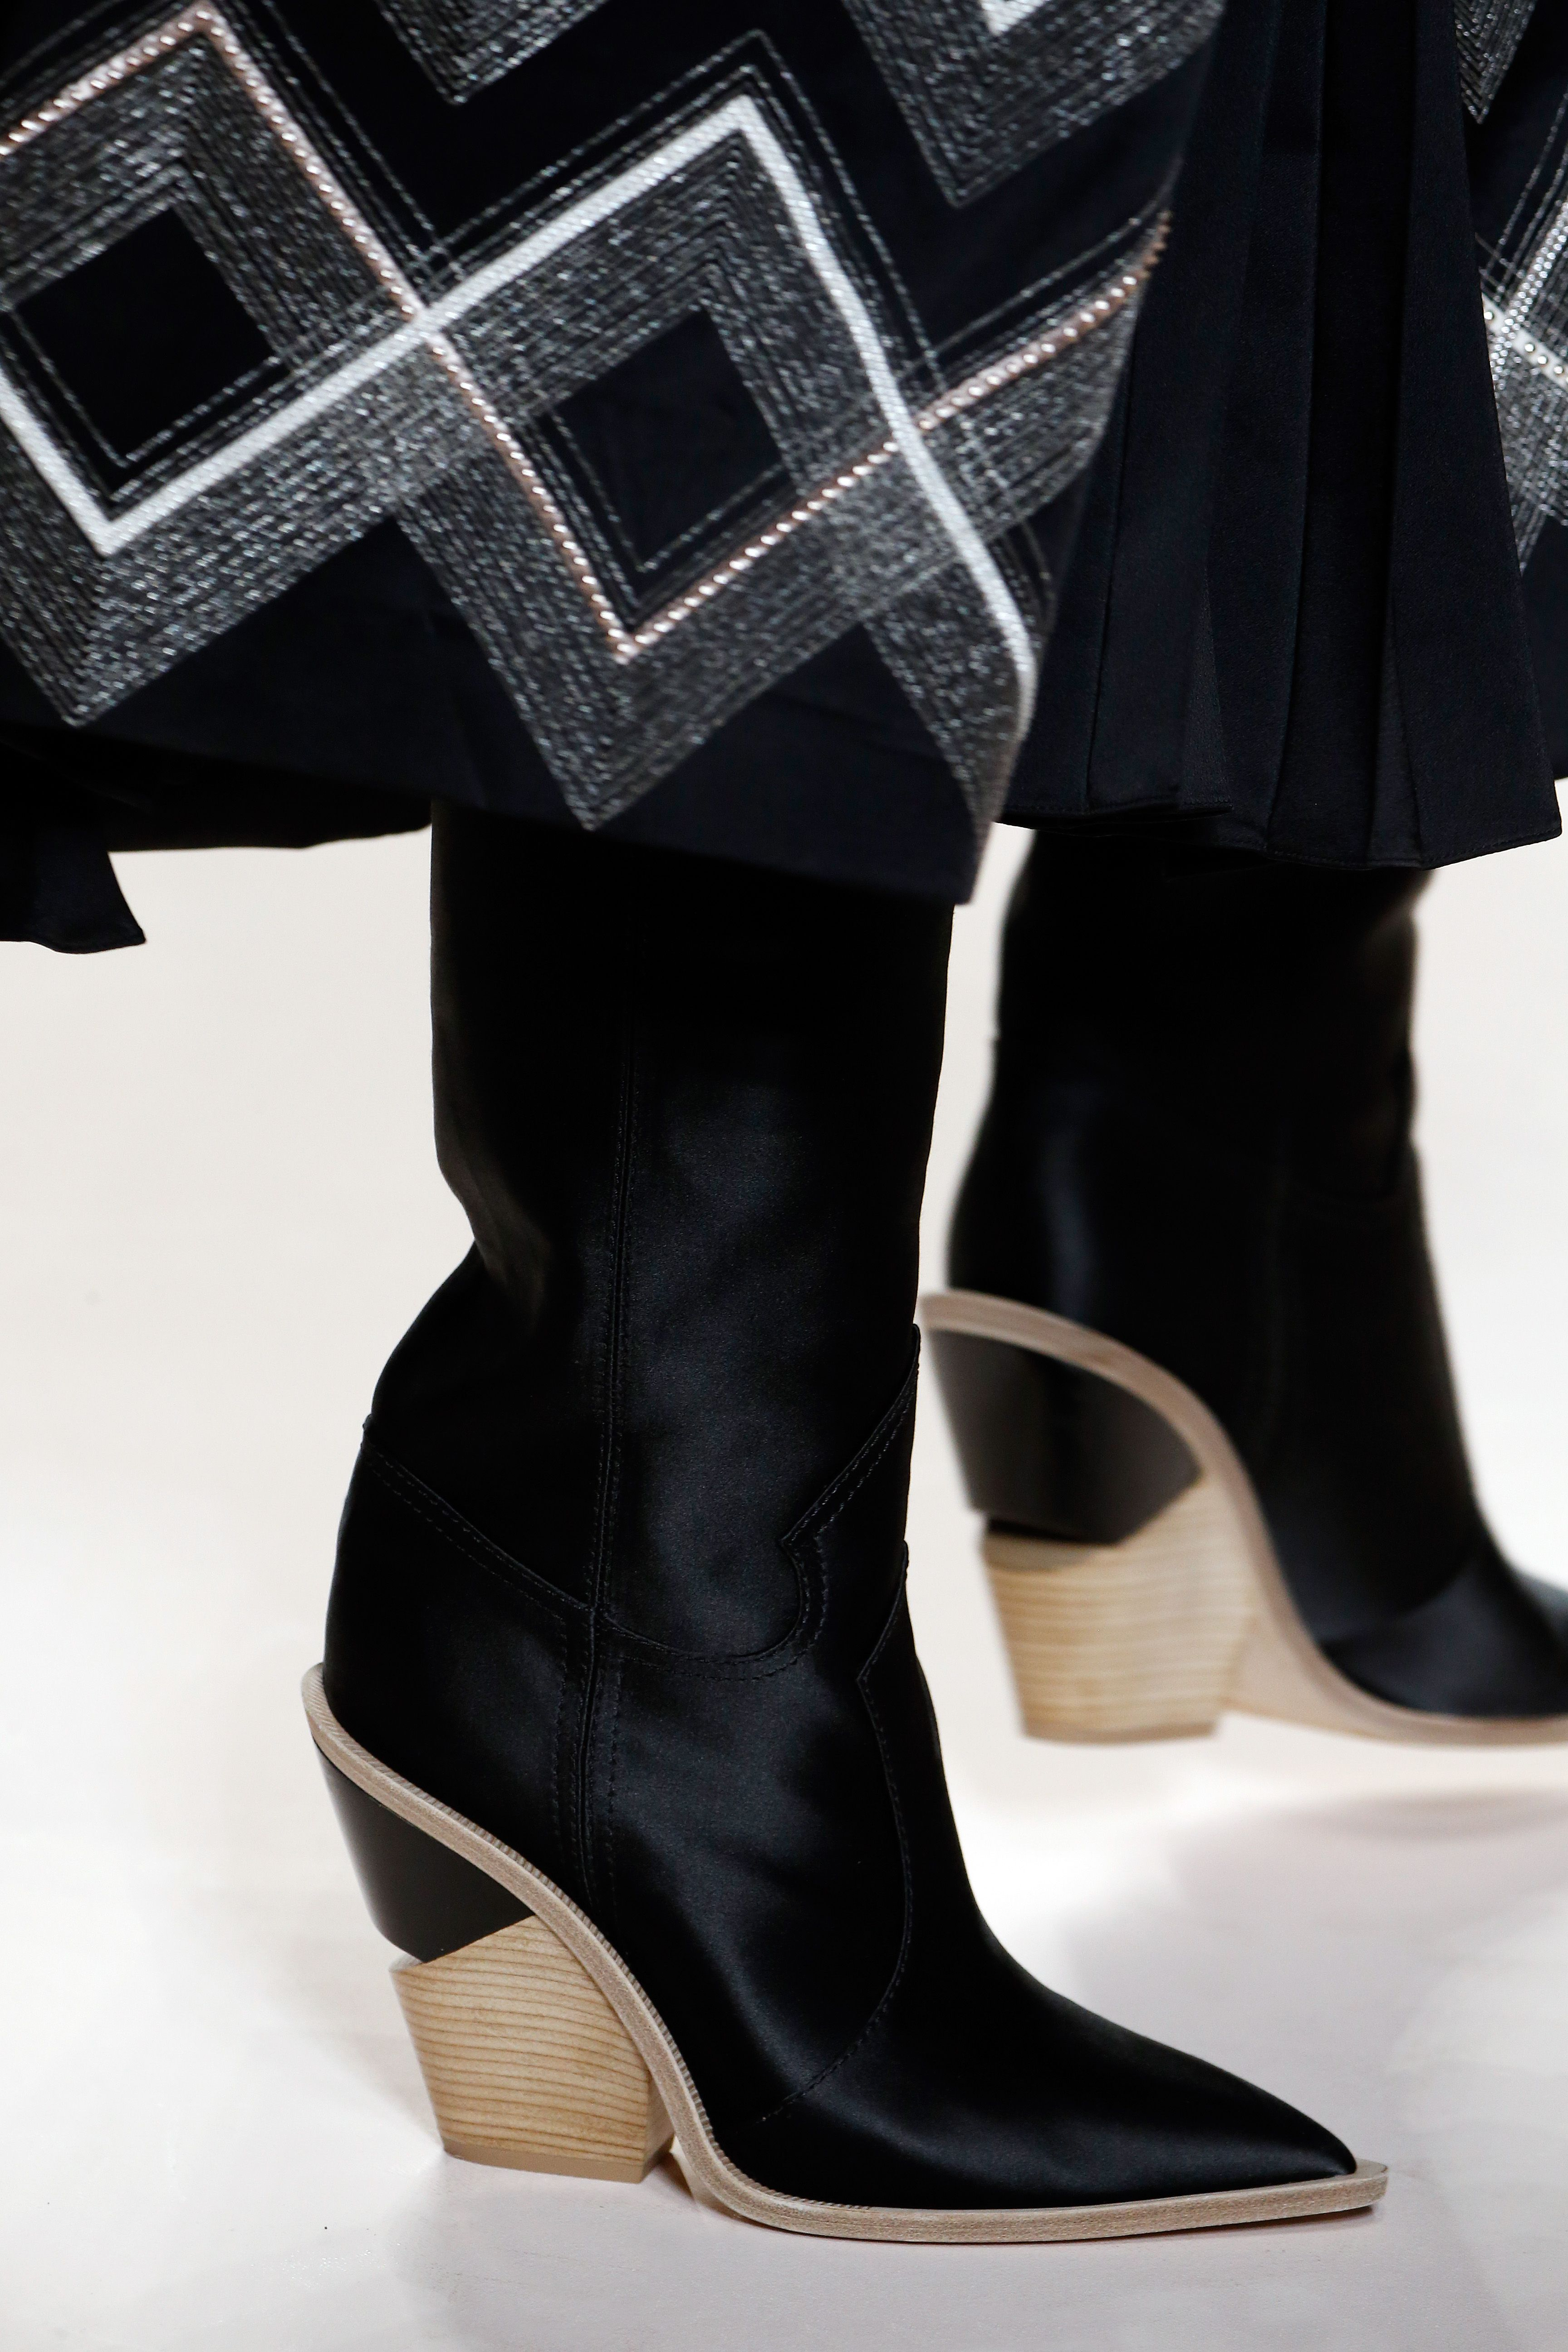 bb92b7437 Fendi Fall/Winter 2018-19 Fashion Show | Fendi | Shoes, Boots ...